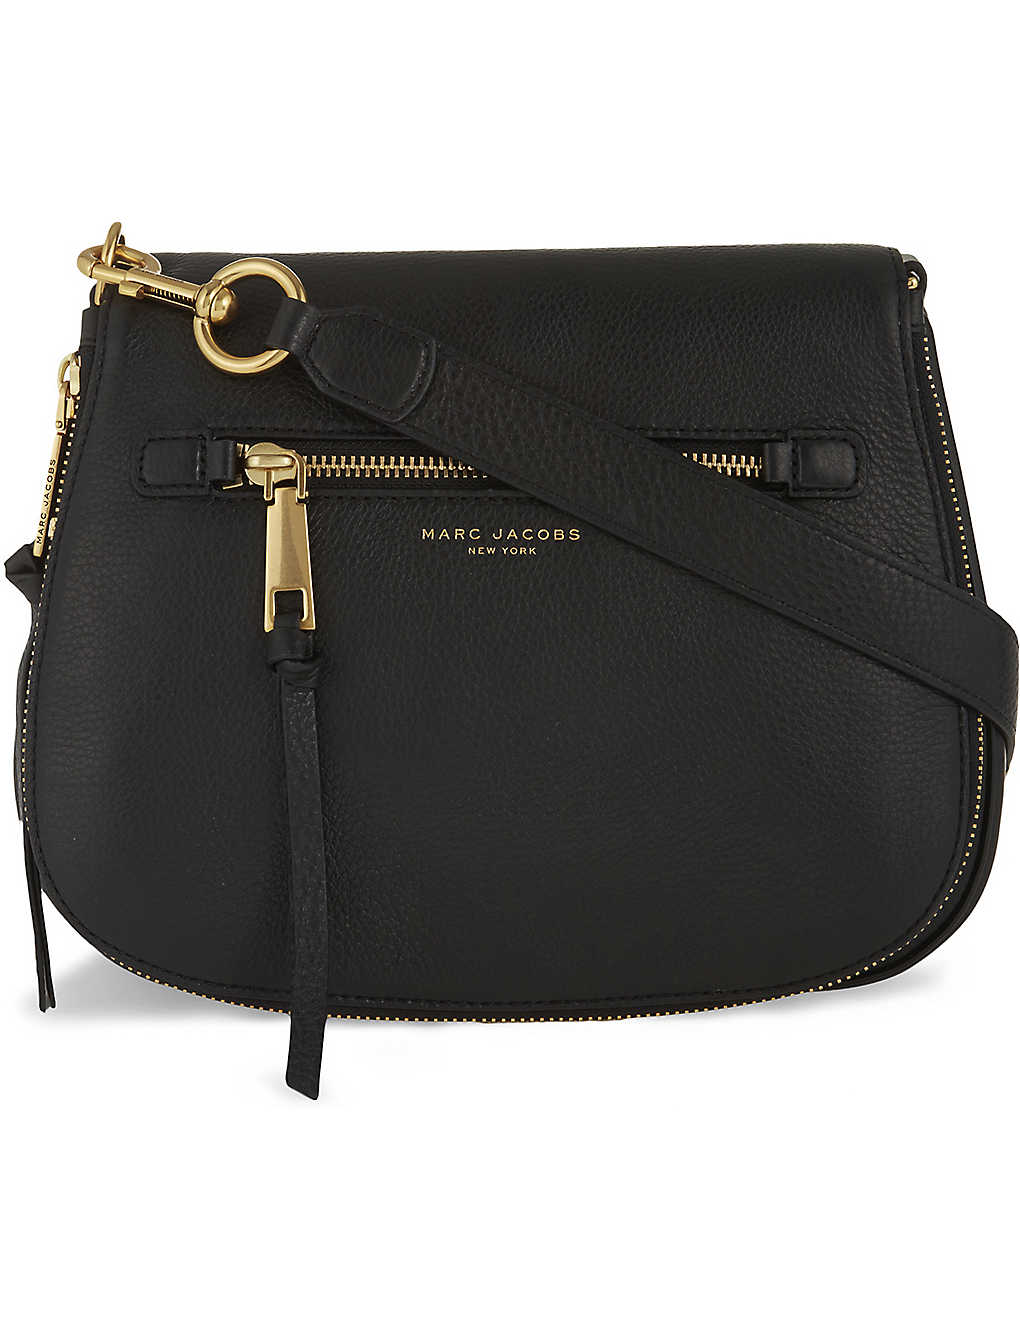 MARC JACOBS: Recruit leather saddle bag